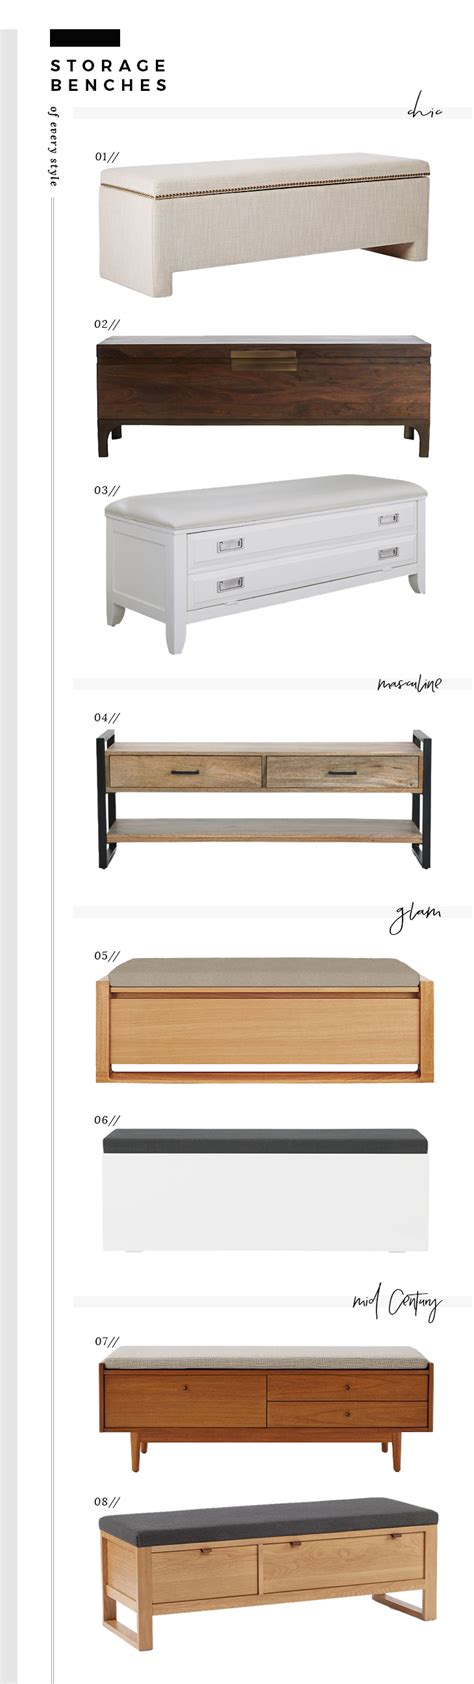 artisan bench with shoe storage benches with storage chic white bench storage white bench